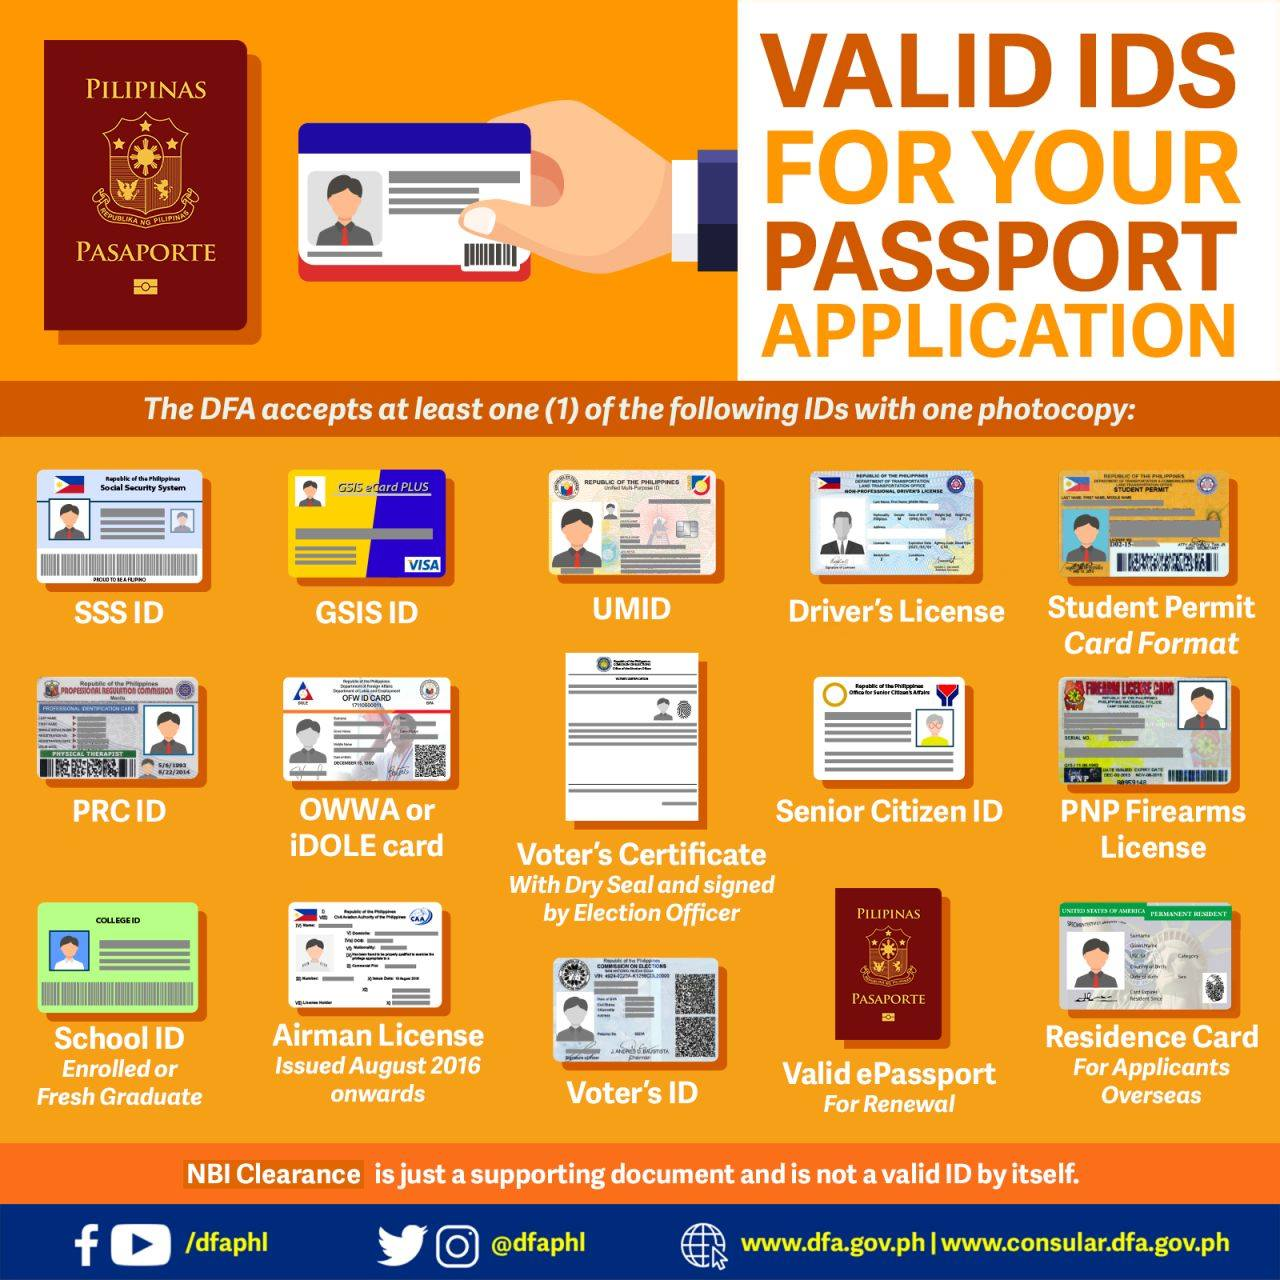 dfa accepted valid id for passport